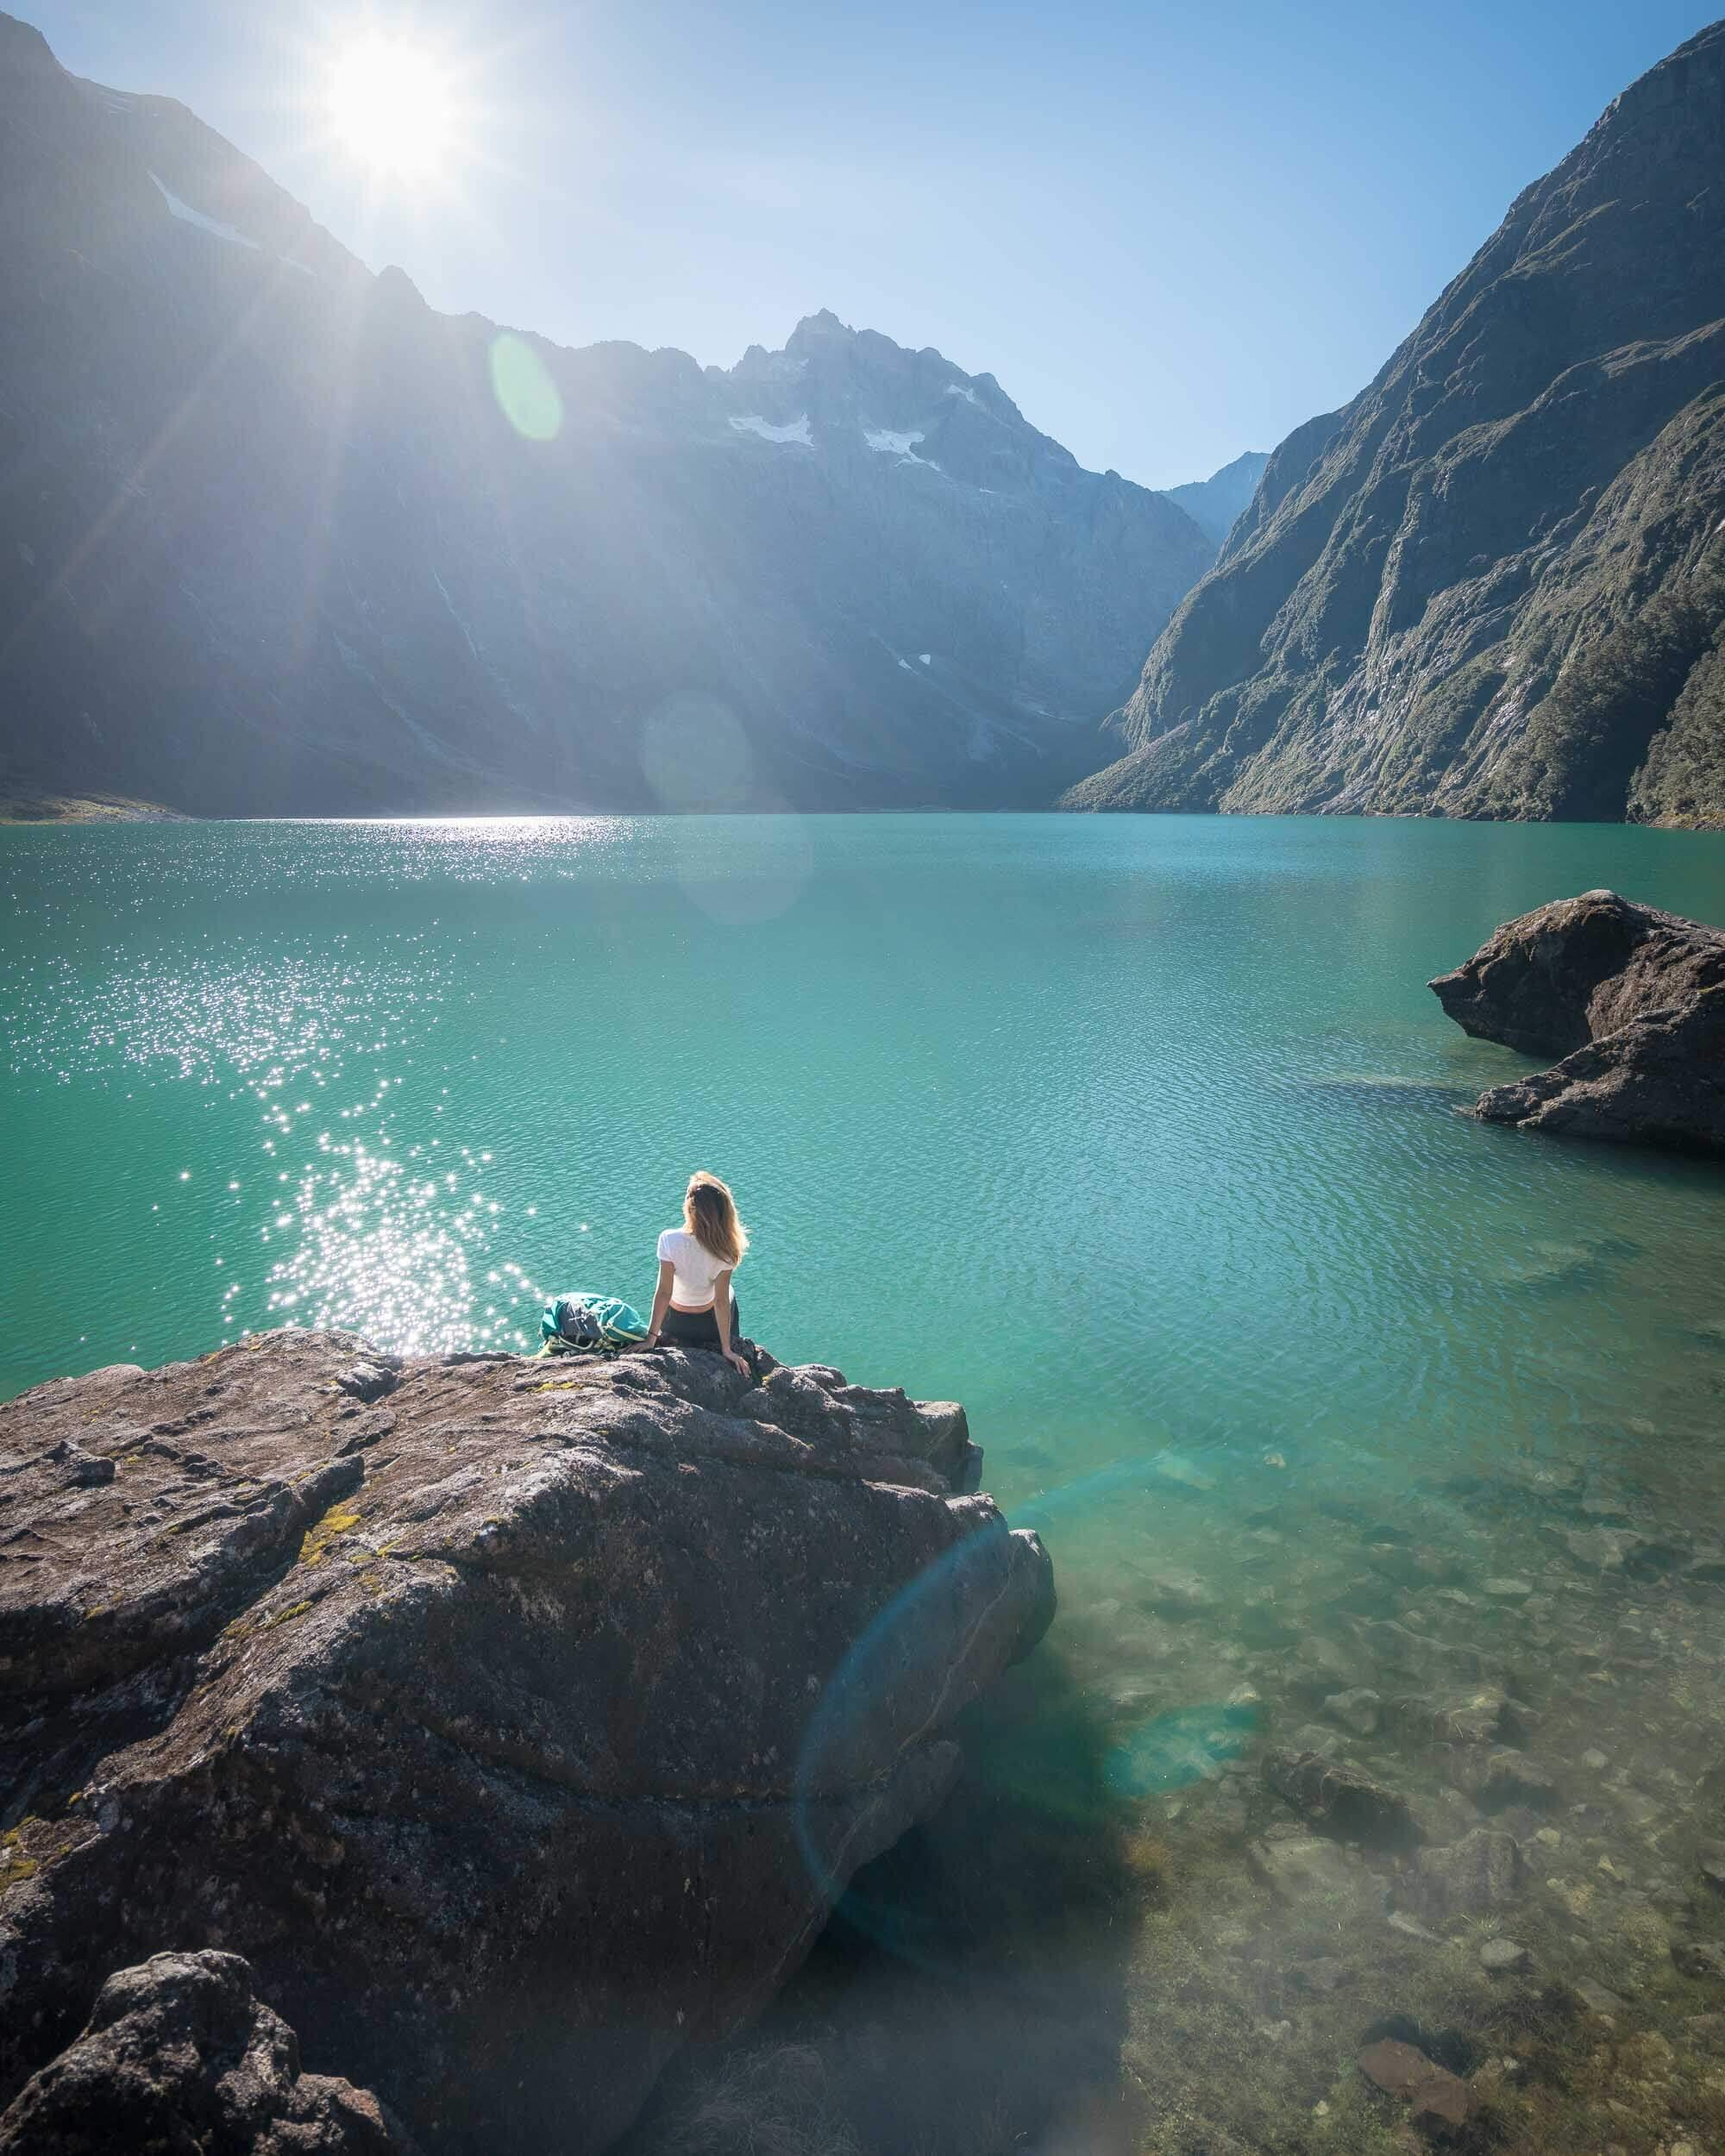 Lake Marian on New Zealand's South Island. We spent 2 nights camping here.